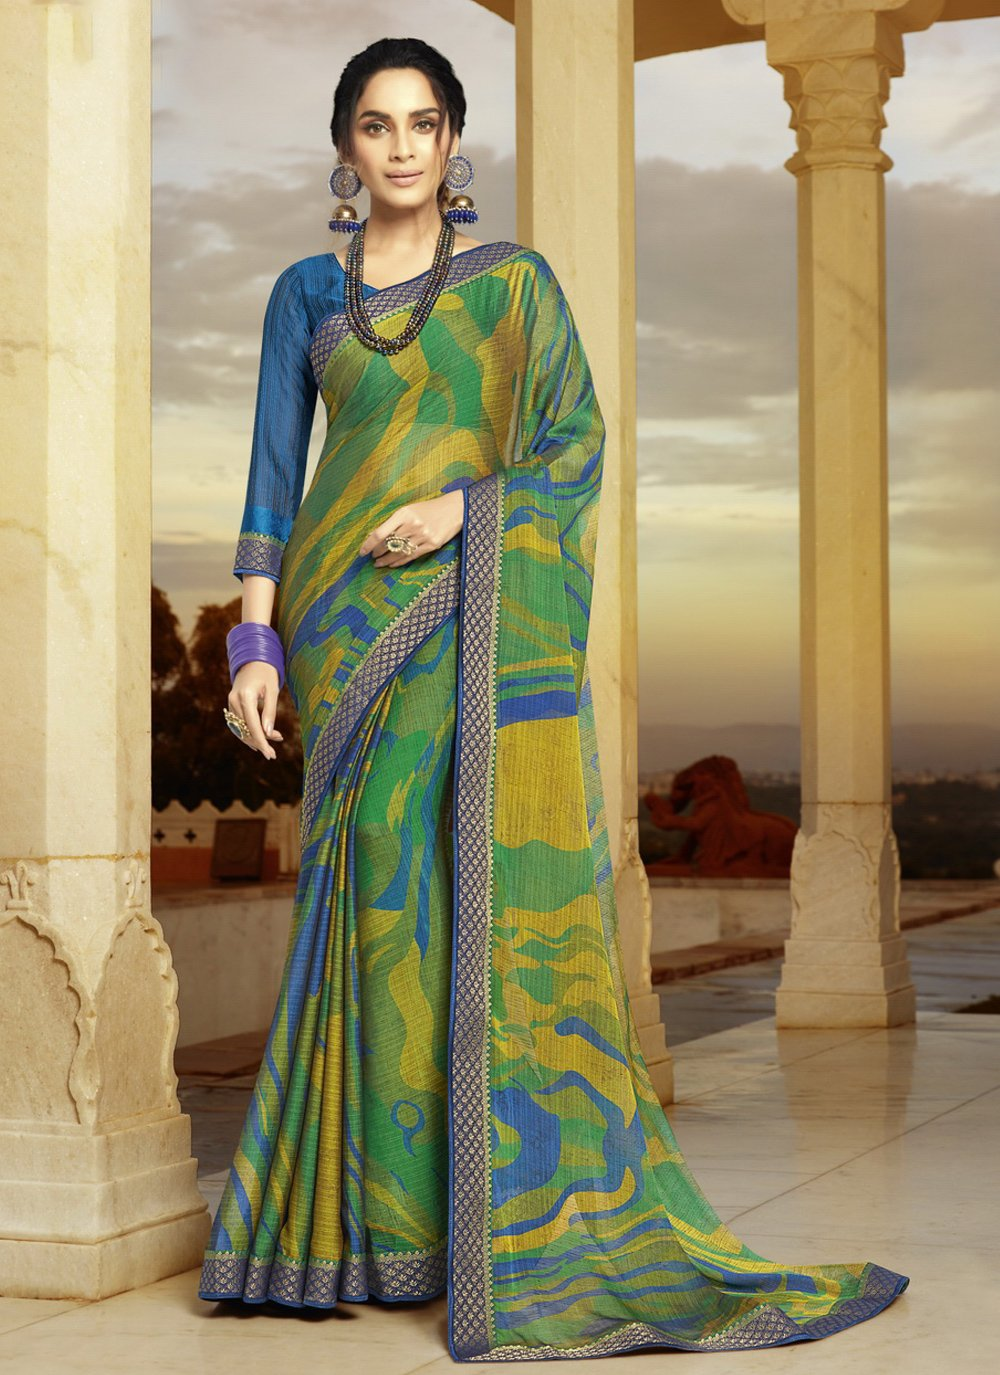 Printed Faux Georgette Shaded Saree in Multi Colour